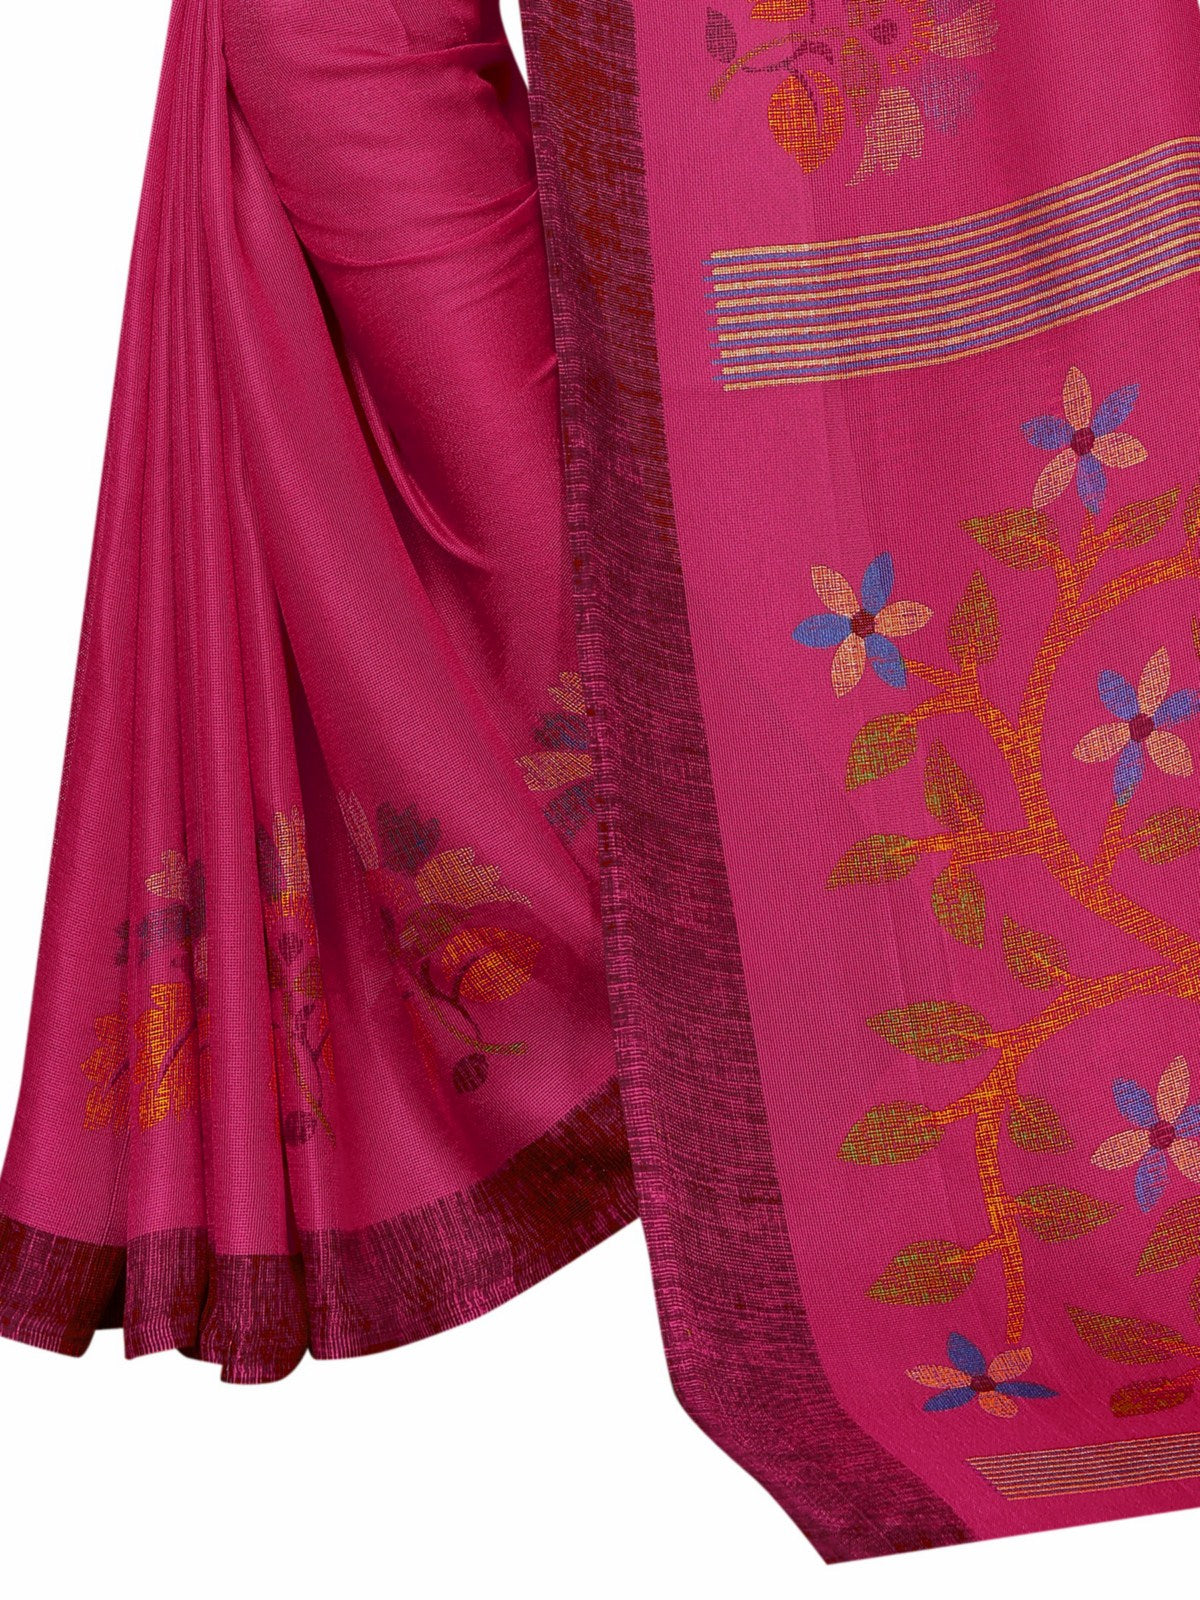 Dark Pink Soft Cotton Printed Designer Sari